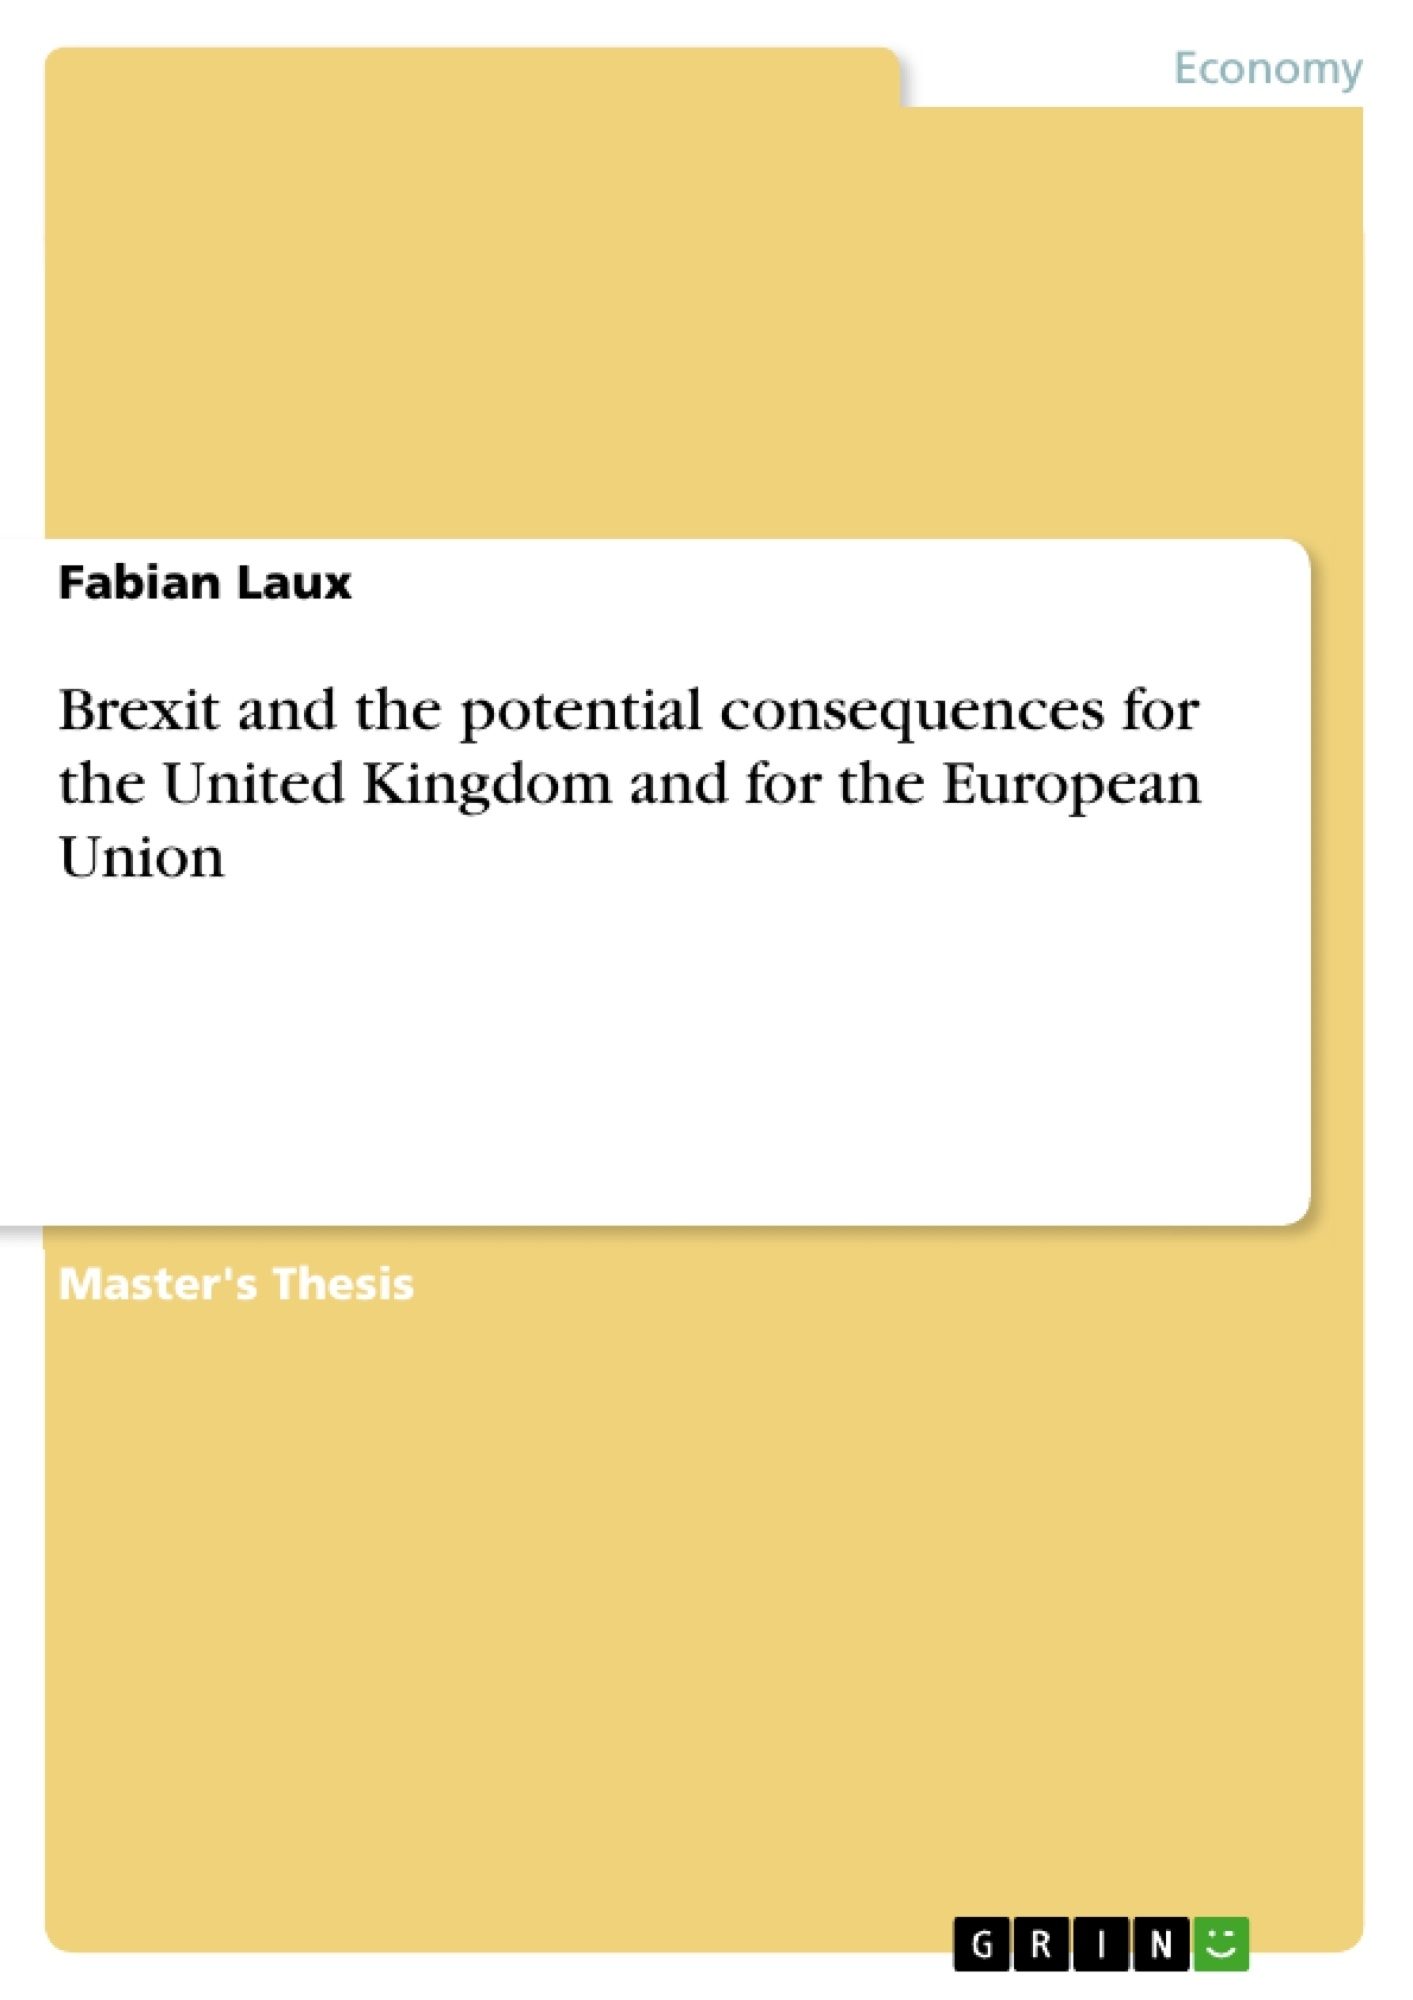 Title: Brexit and the potential consequences for the United Kingdom and for the European Union